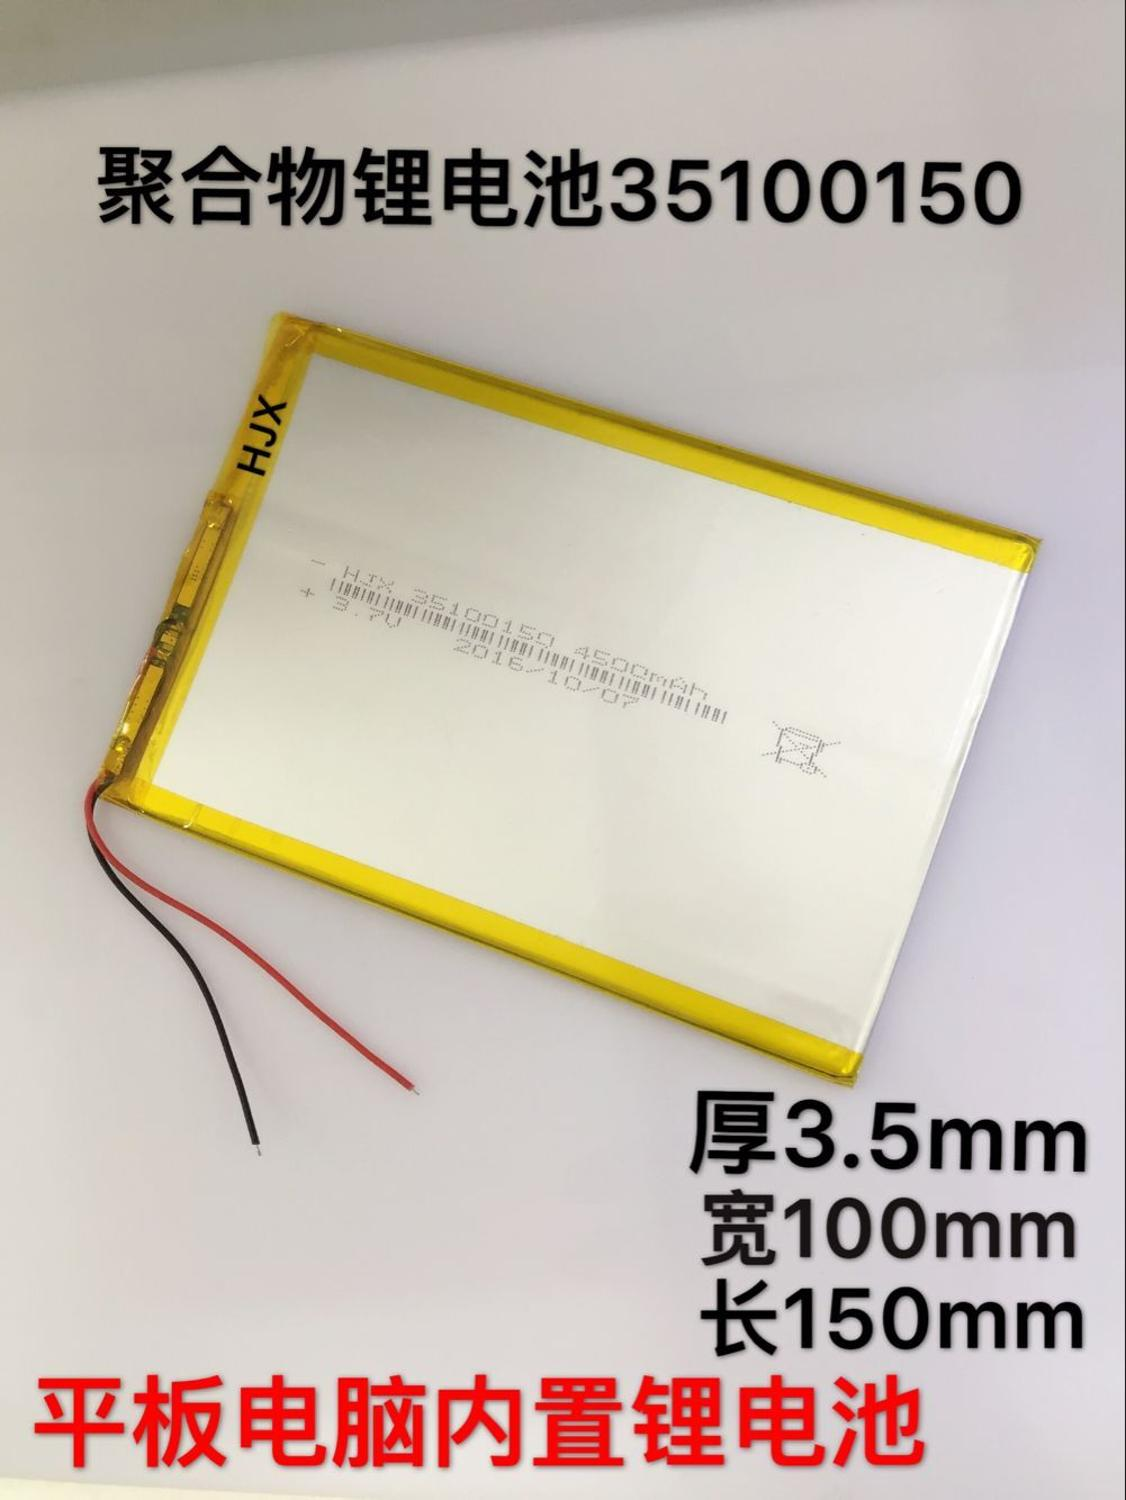 Polymer battery, 3510015010.1 inch Tablet PC, medical equipment, lithium battery for mobile power supply